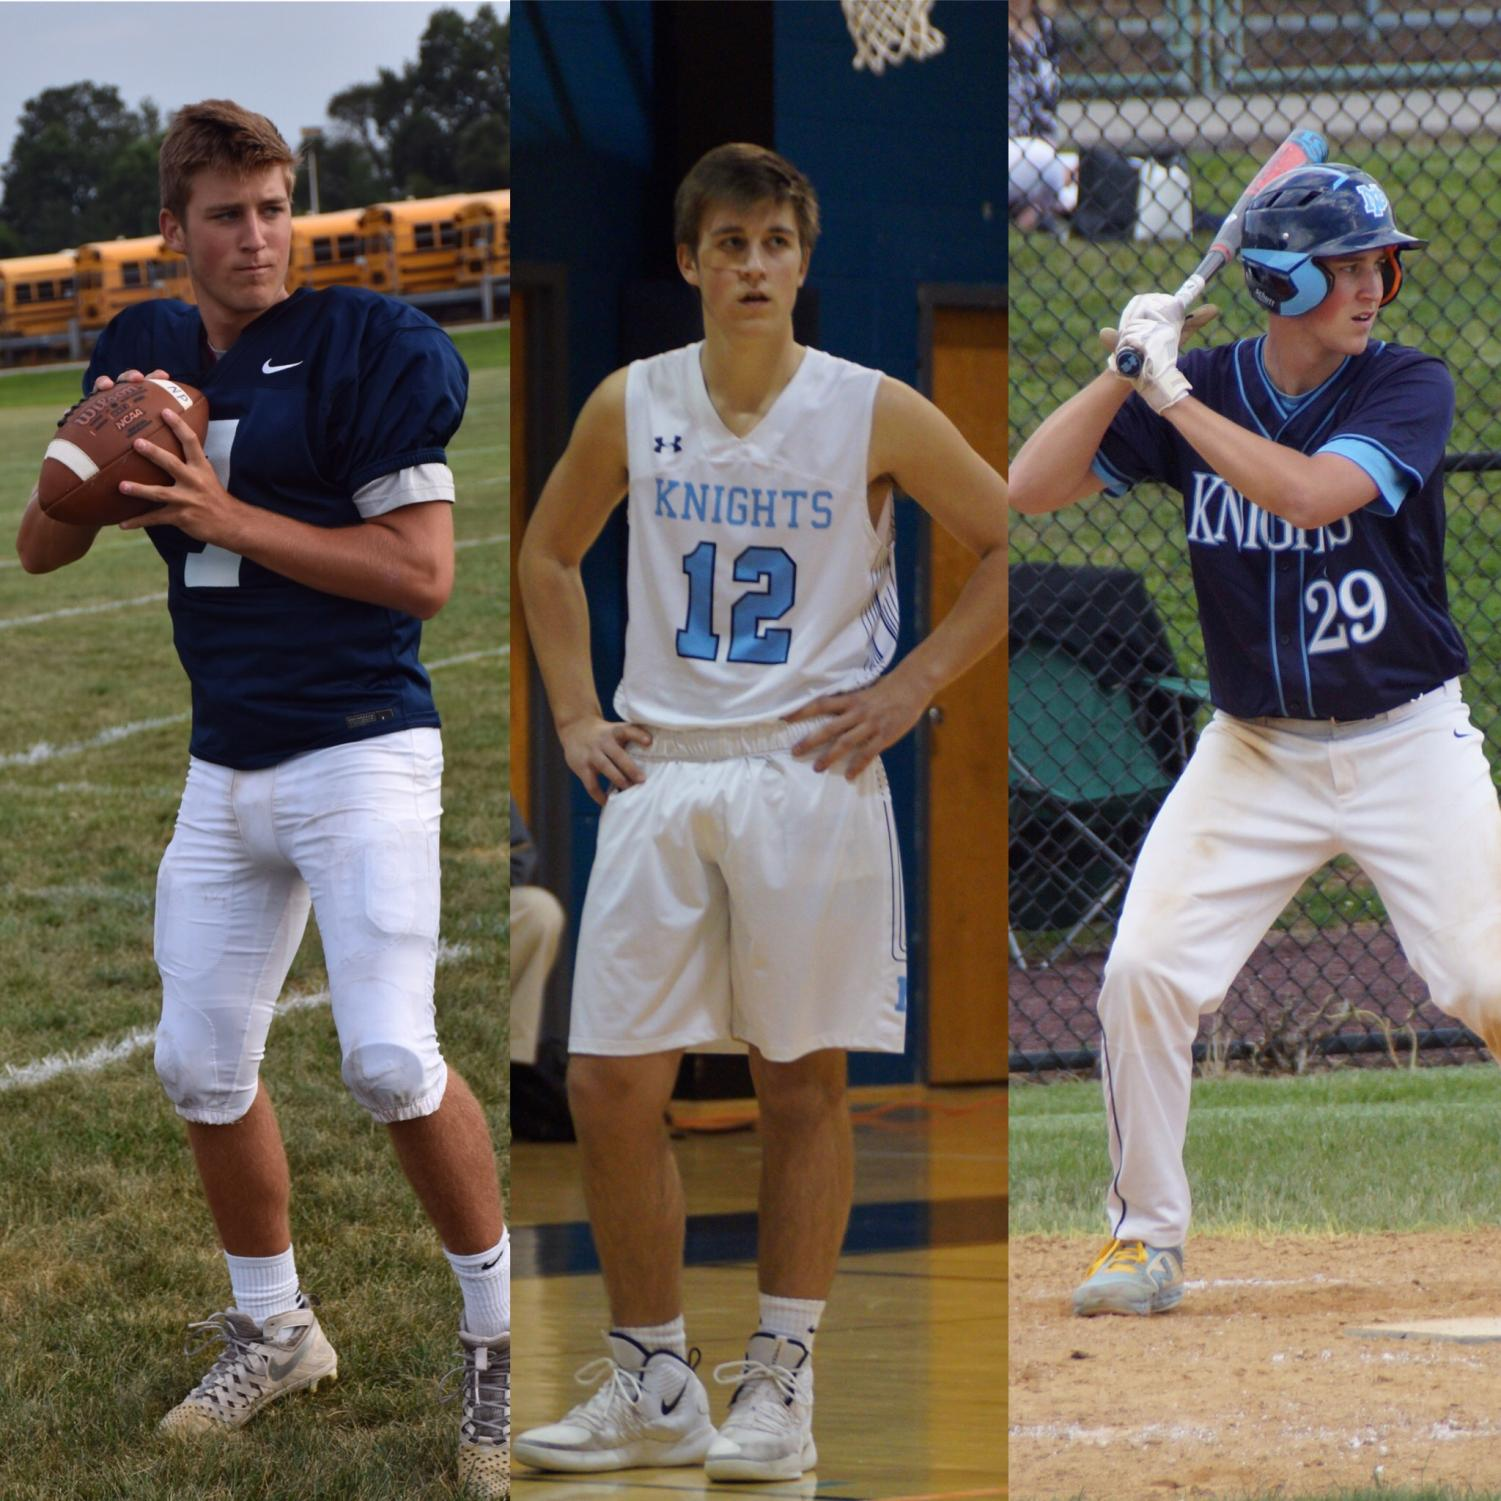 Senior Kolby Barrow is making contributions on the football, basketball, and baseball team as a three-sport athlete.